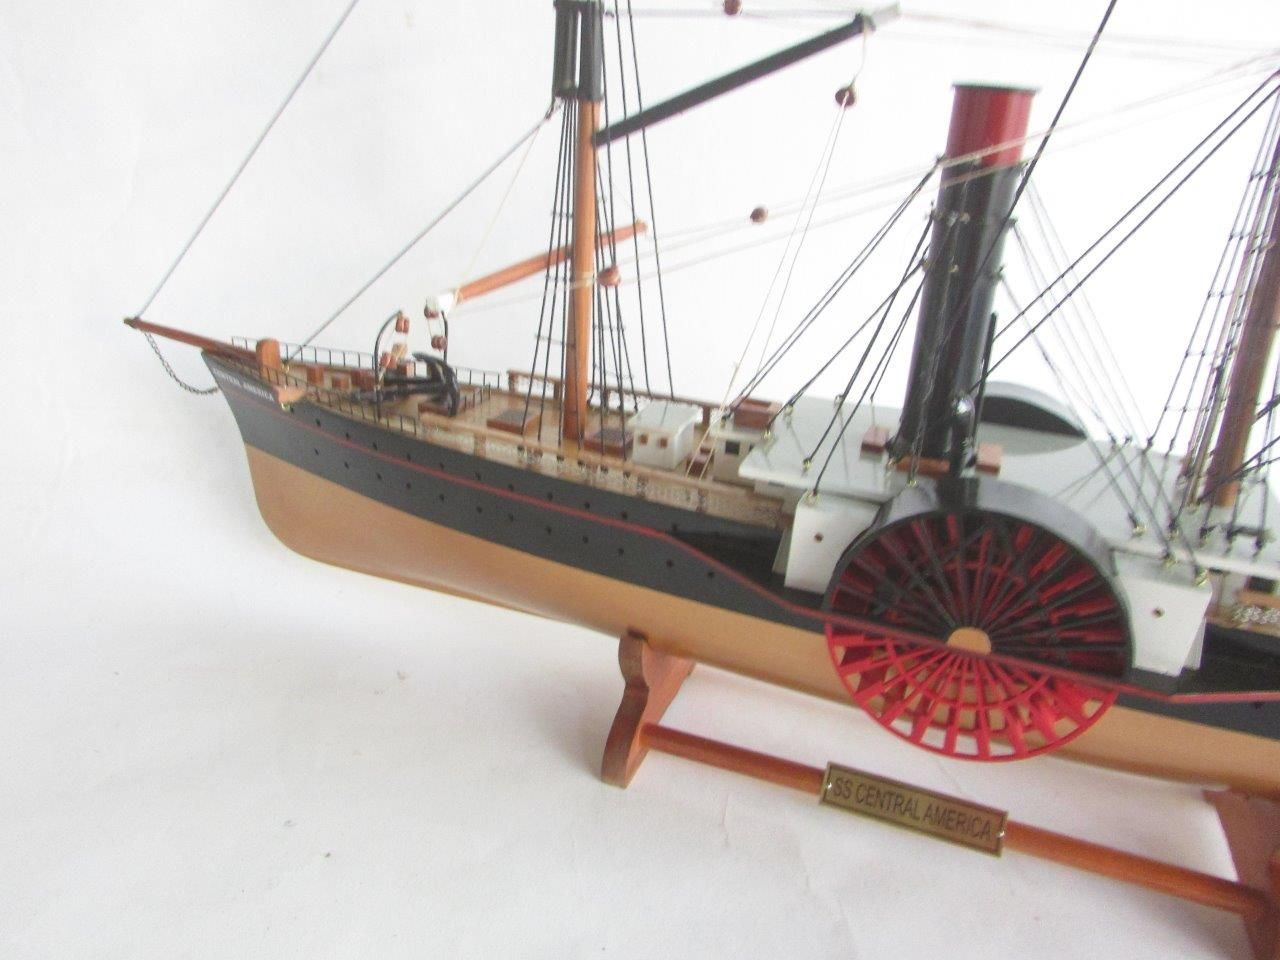 2053-13811-SS-Central-America-wooden-model-ship